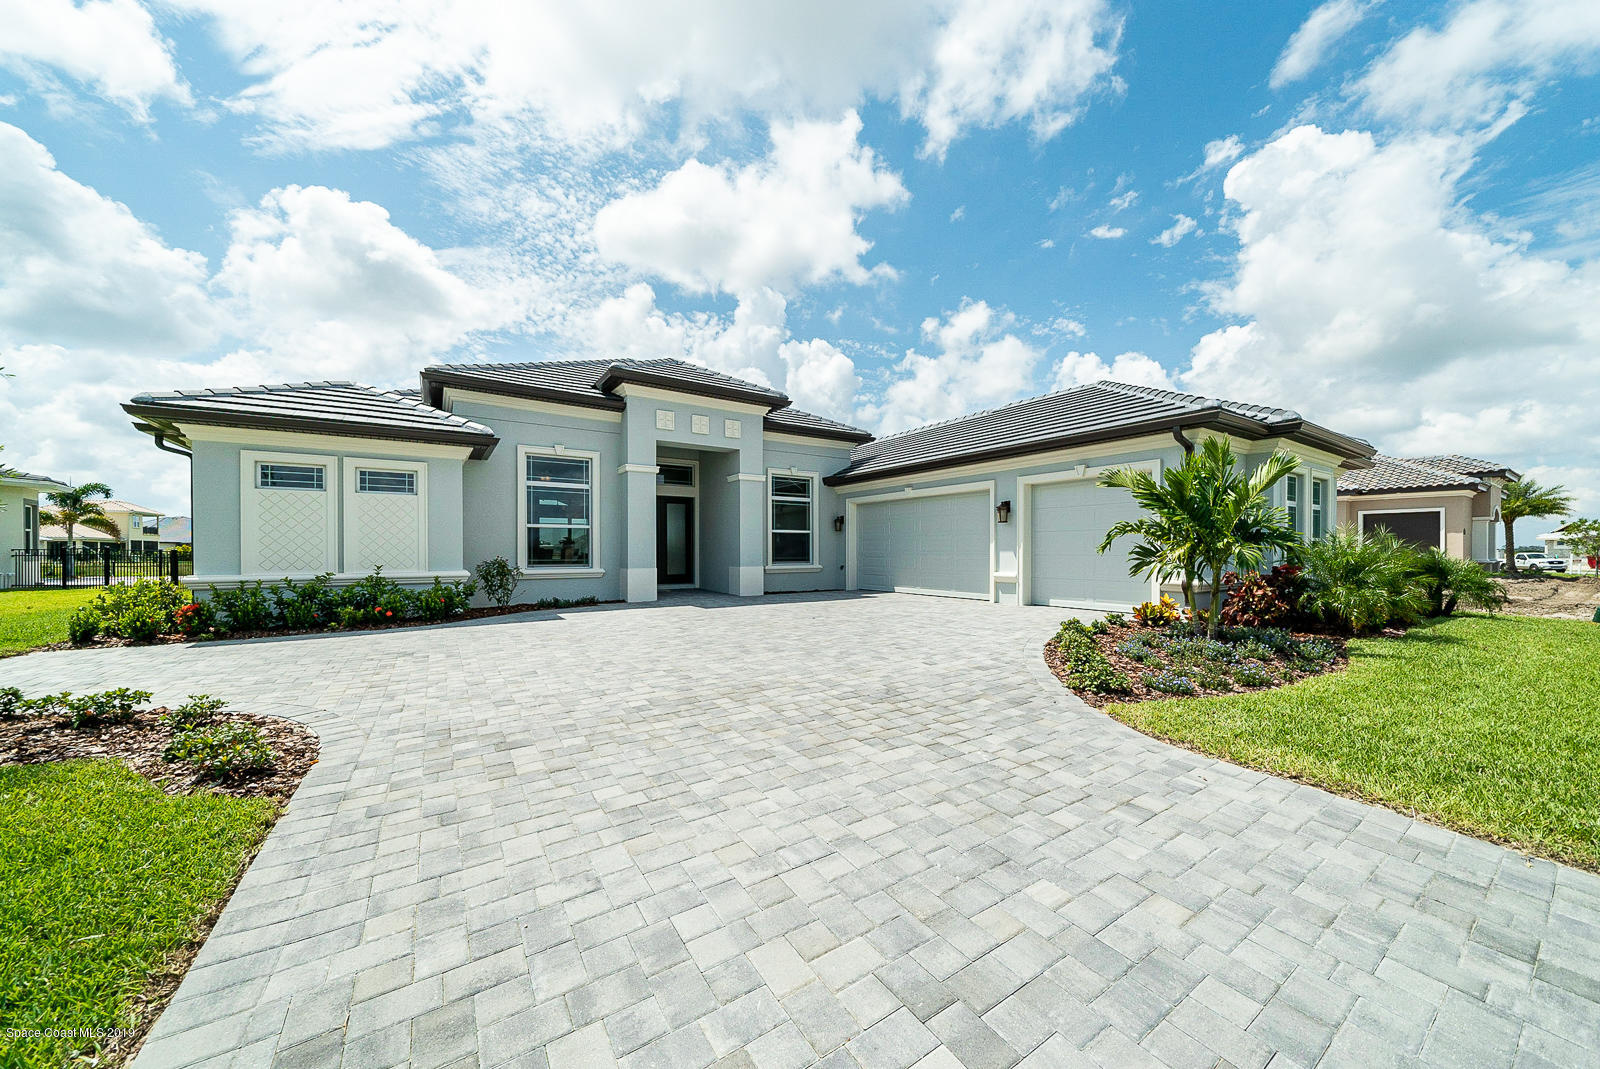 Single Family Homes for Sale at 8300 Serrano Melbourne, Florida 32940 United States